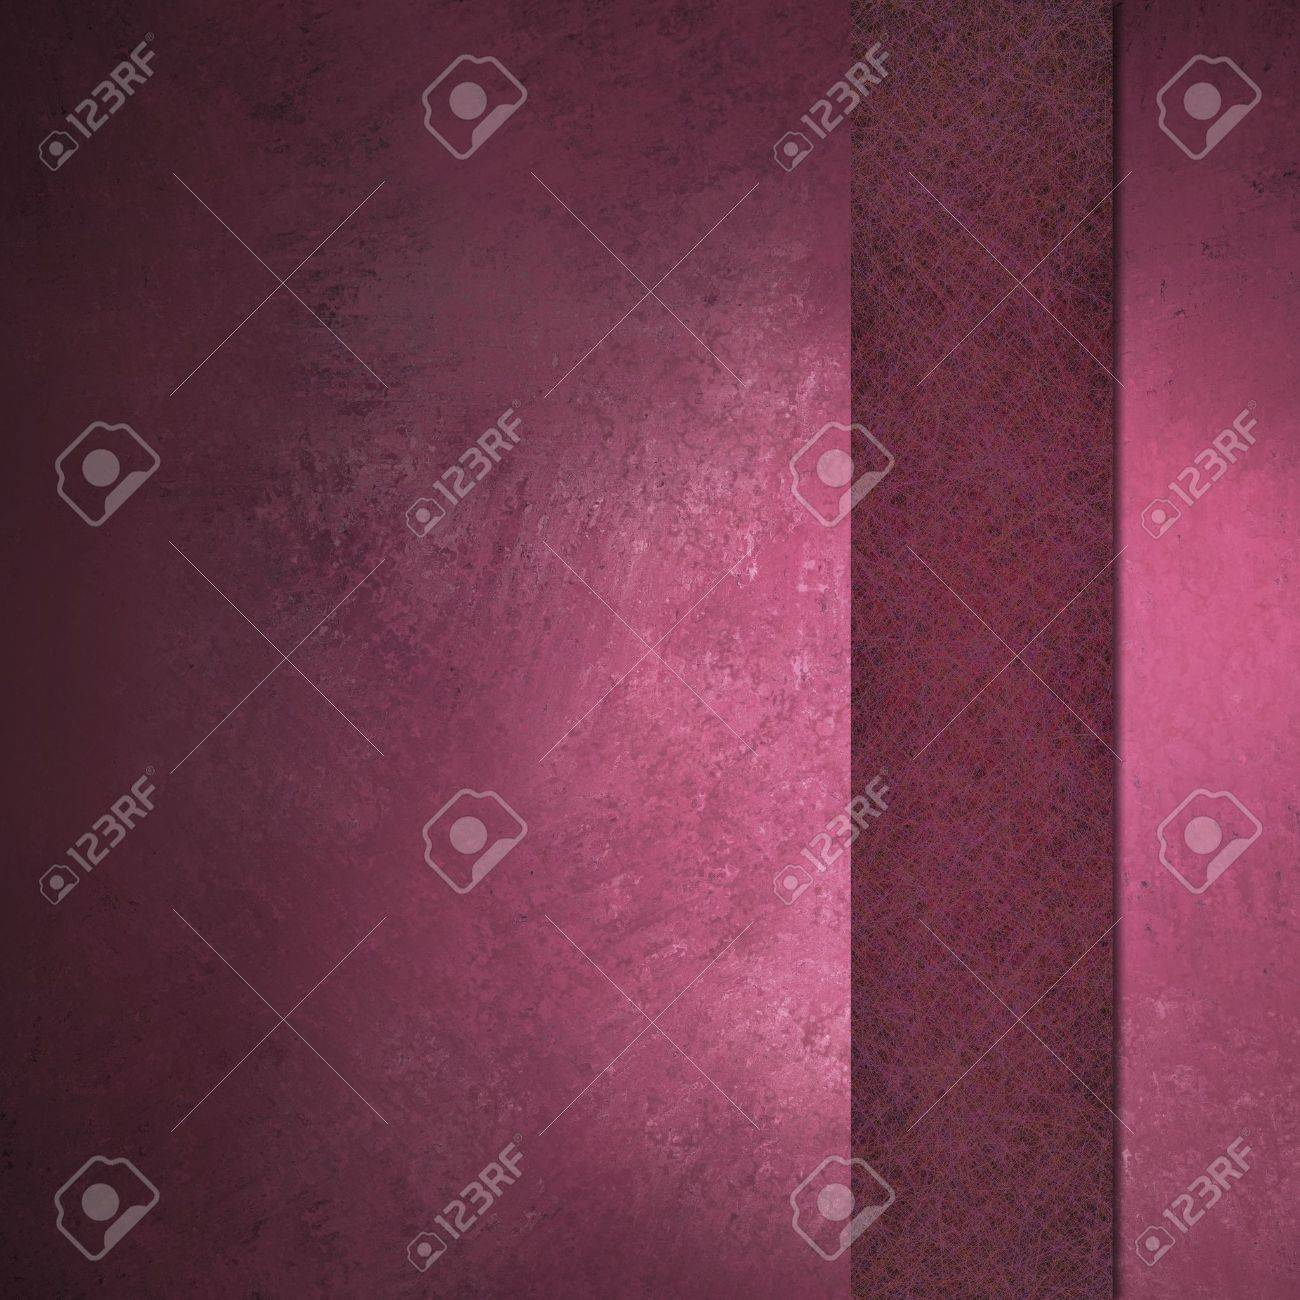 Pink background with ribbon on border with vintage grunge texture and copy space Stock Photo - 11230946